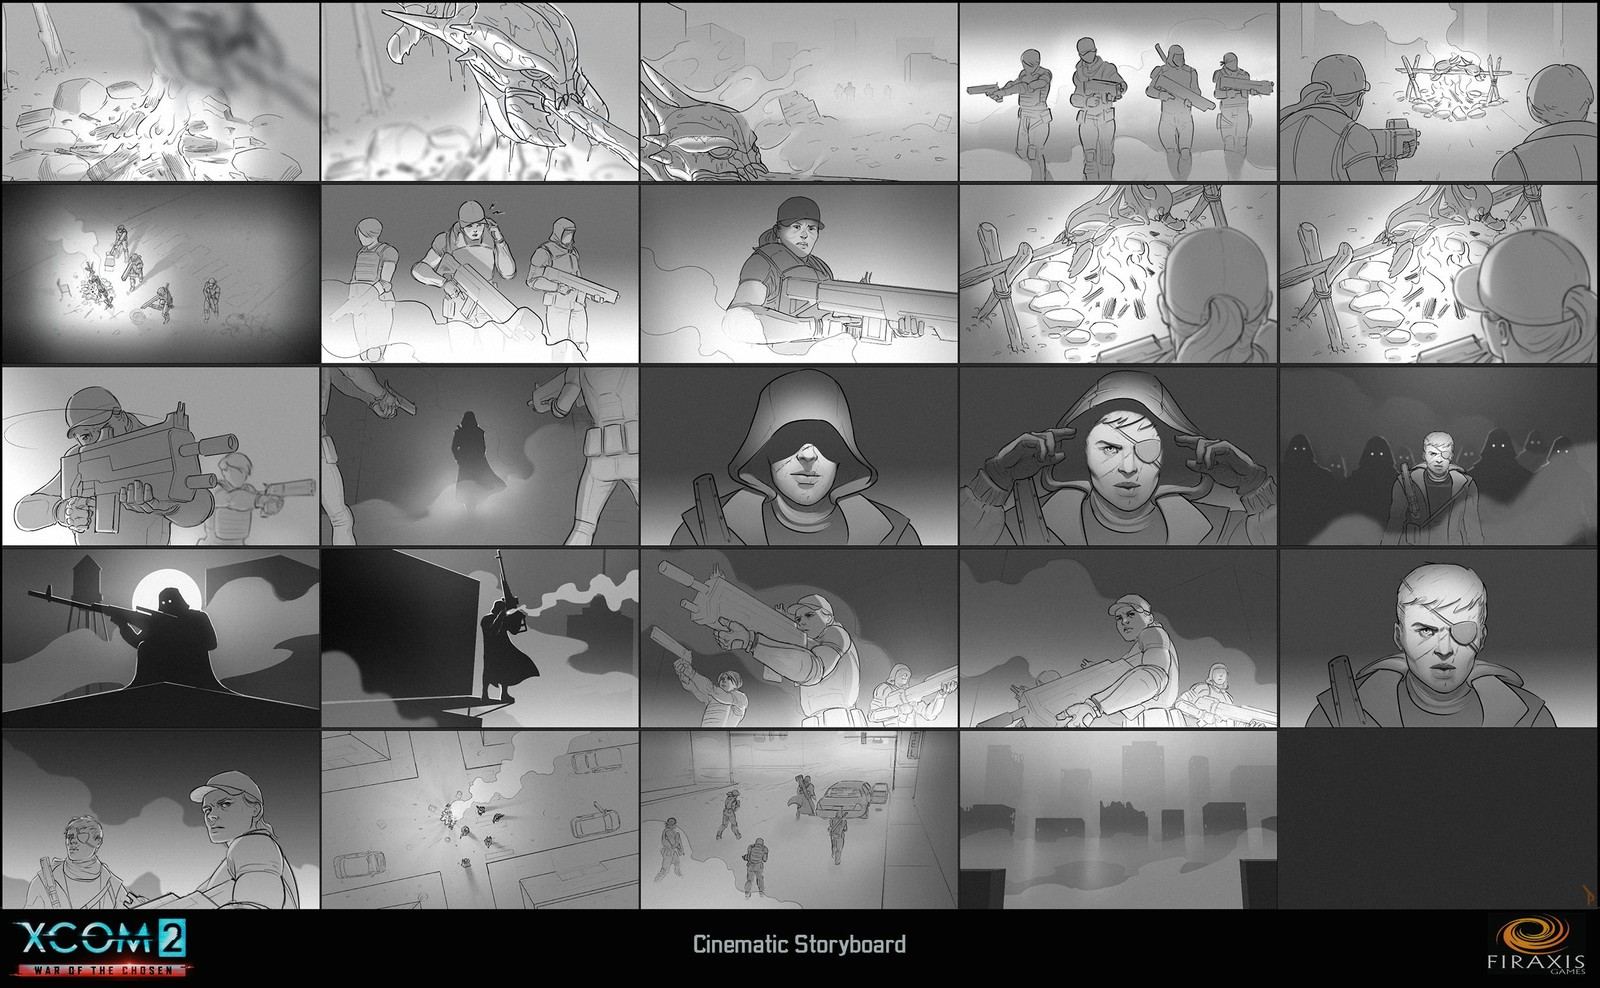 XCOM 2: WOTC Cinematic Storyboard (tone)